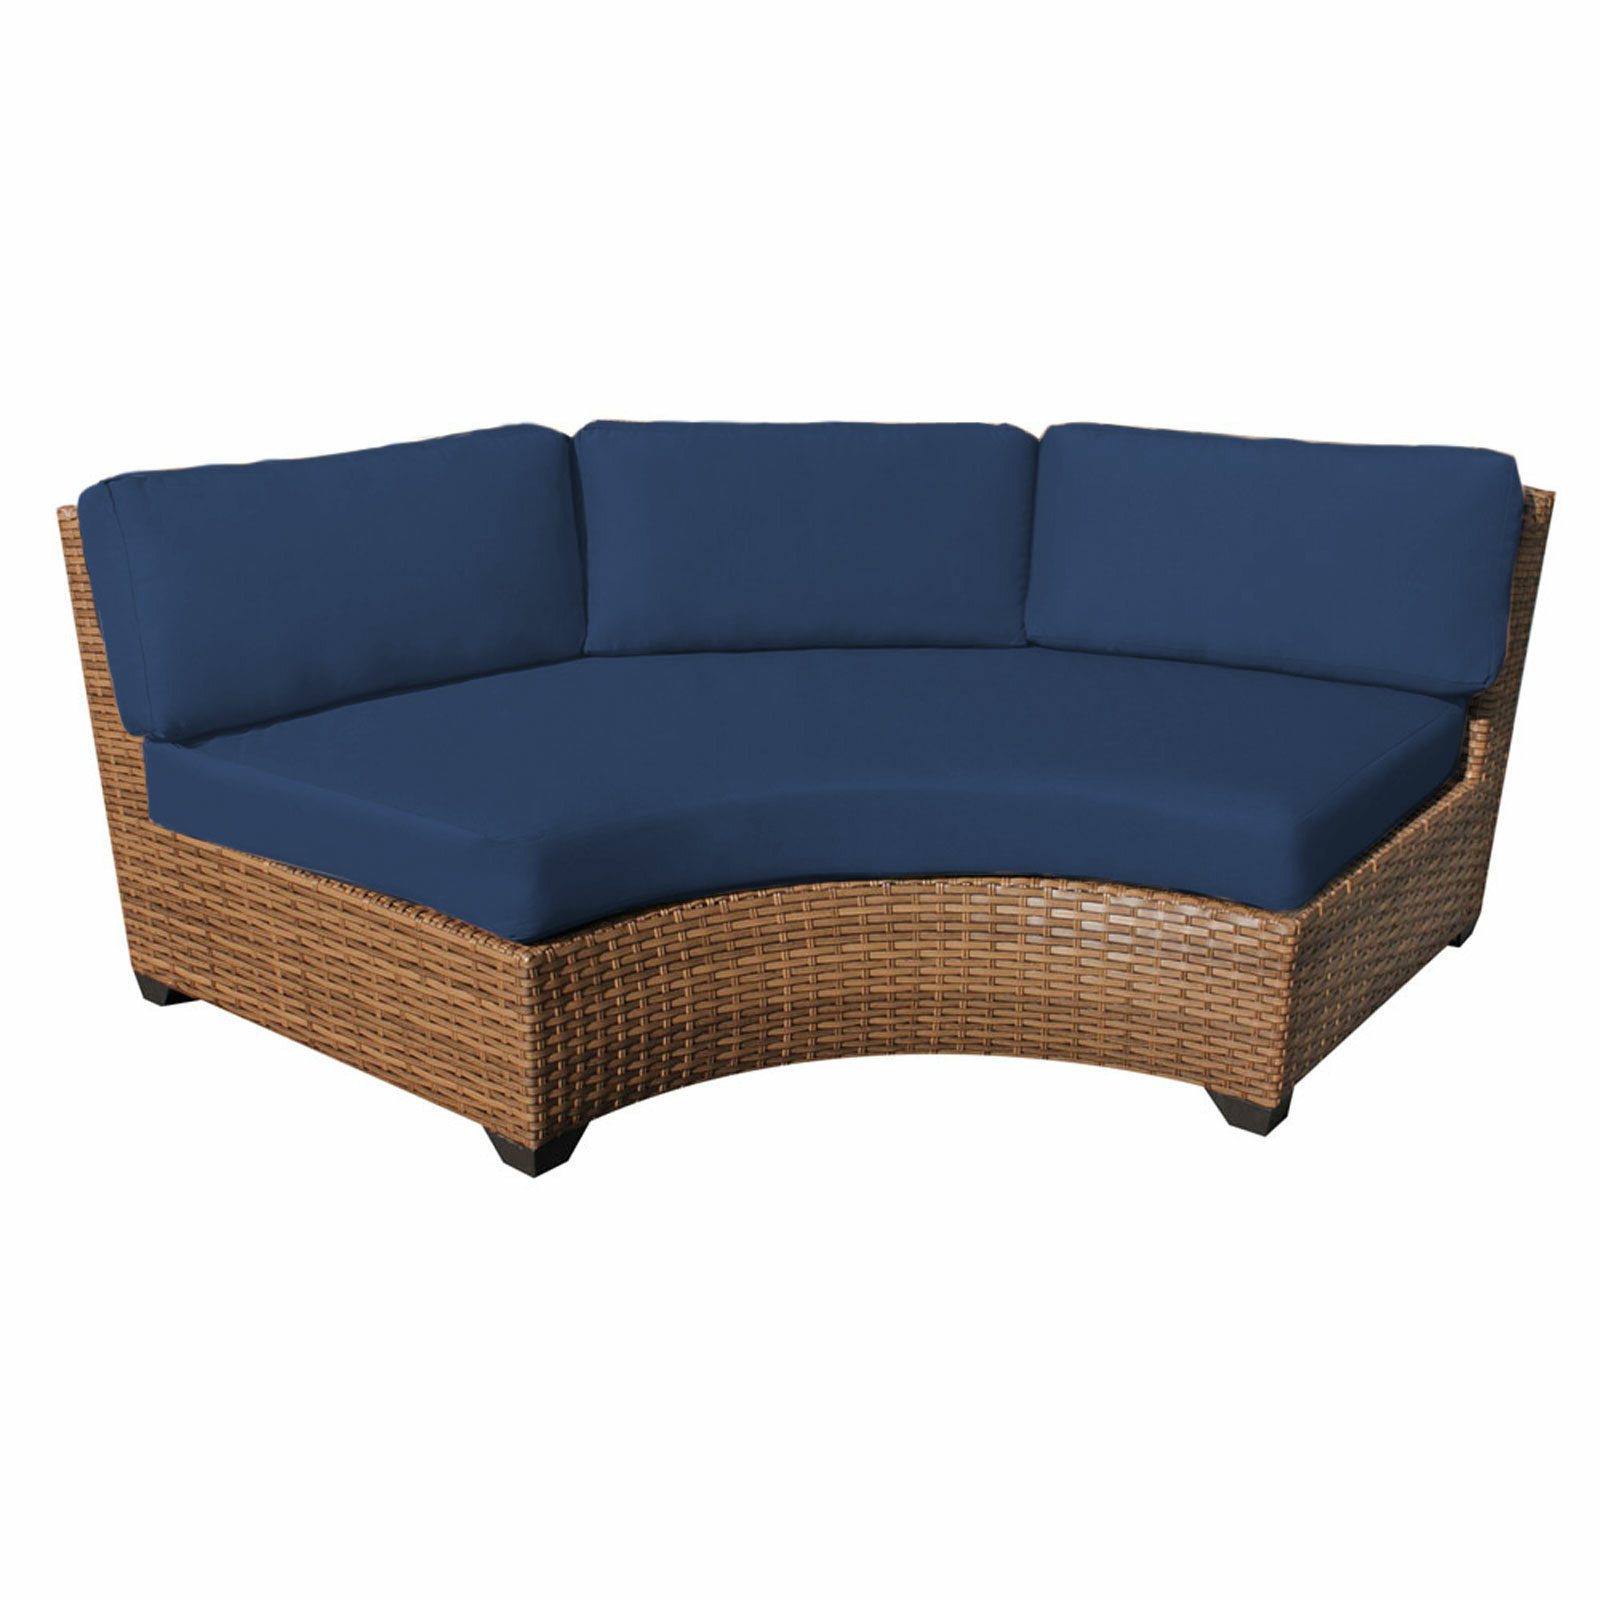 Waterbury Curved Armless Patio Sofa With Cushions Pertaining To Best And Newest Waterbury Patio Sectionals With Cushions (Gallery 9 of 25)